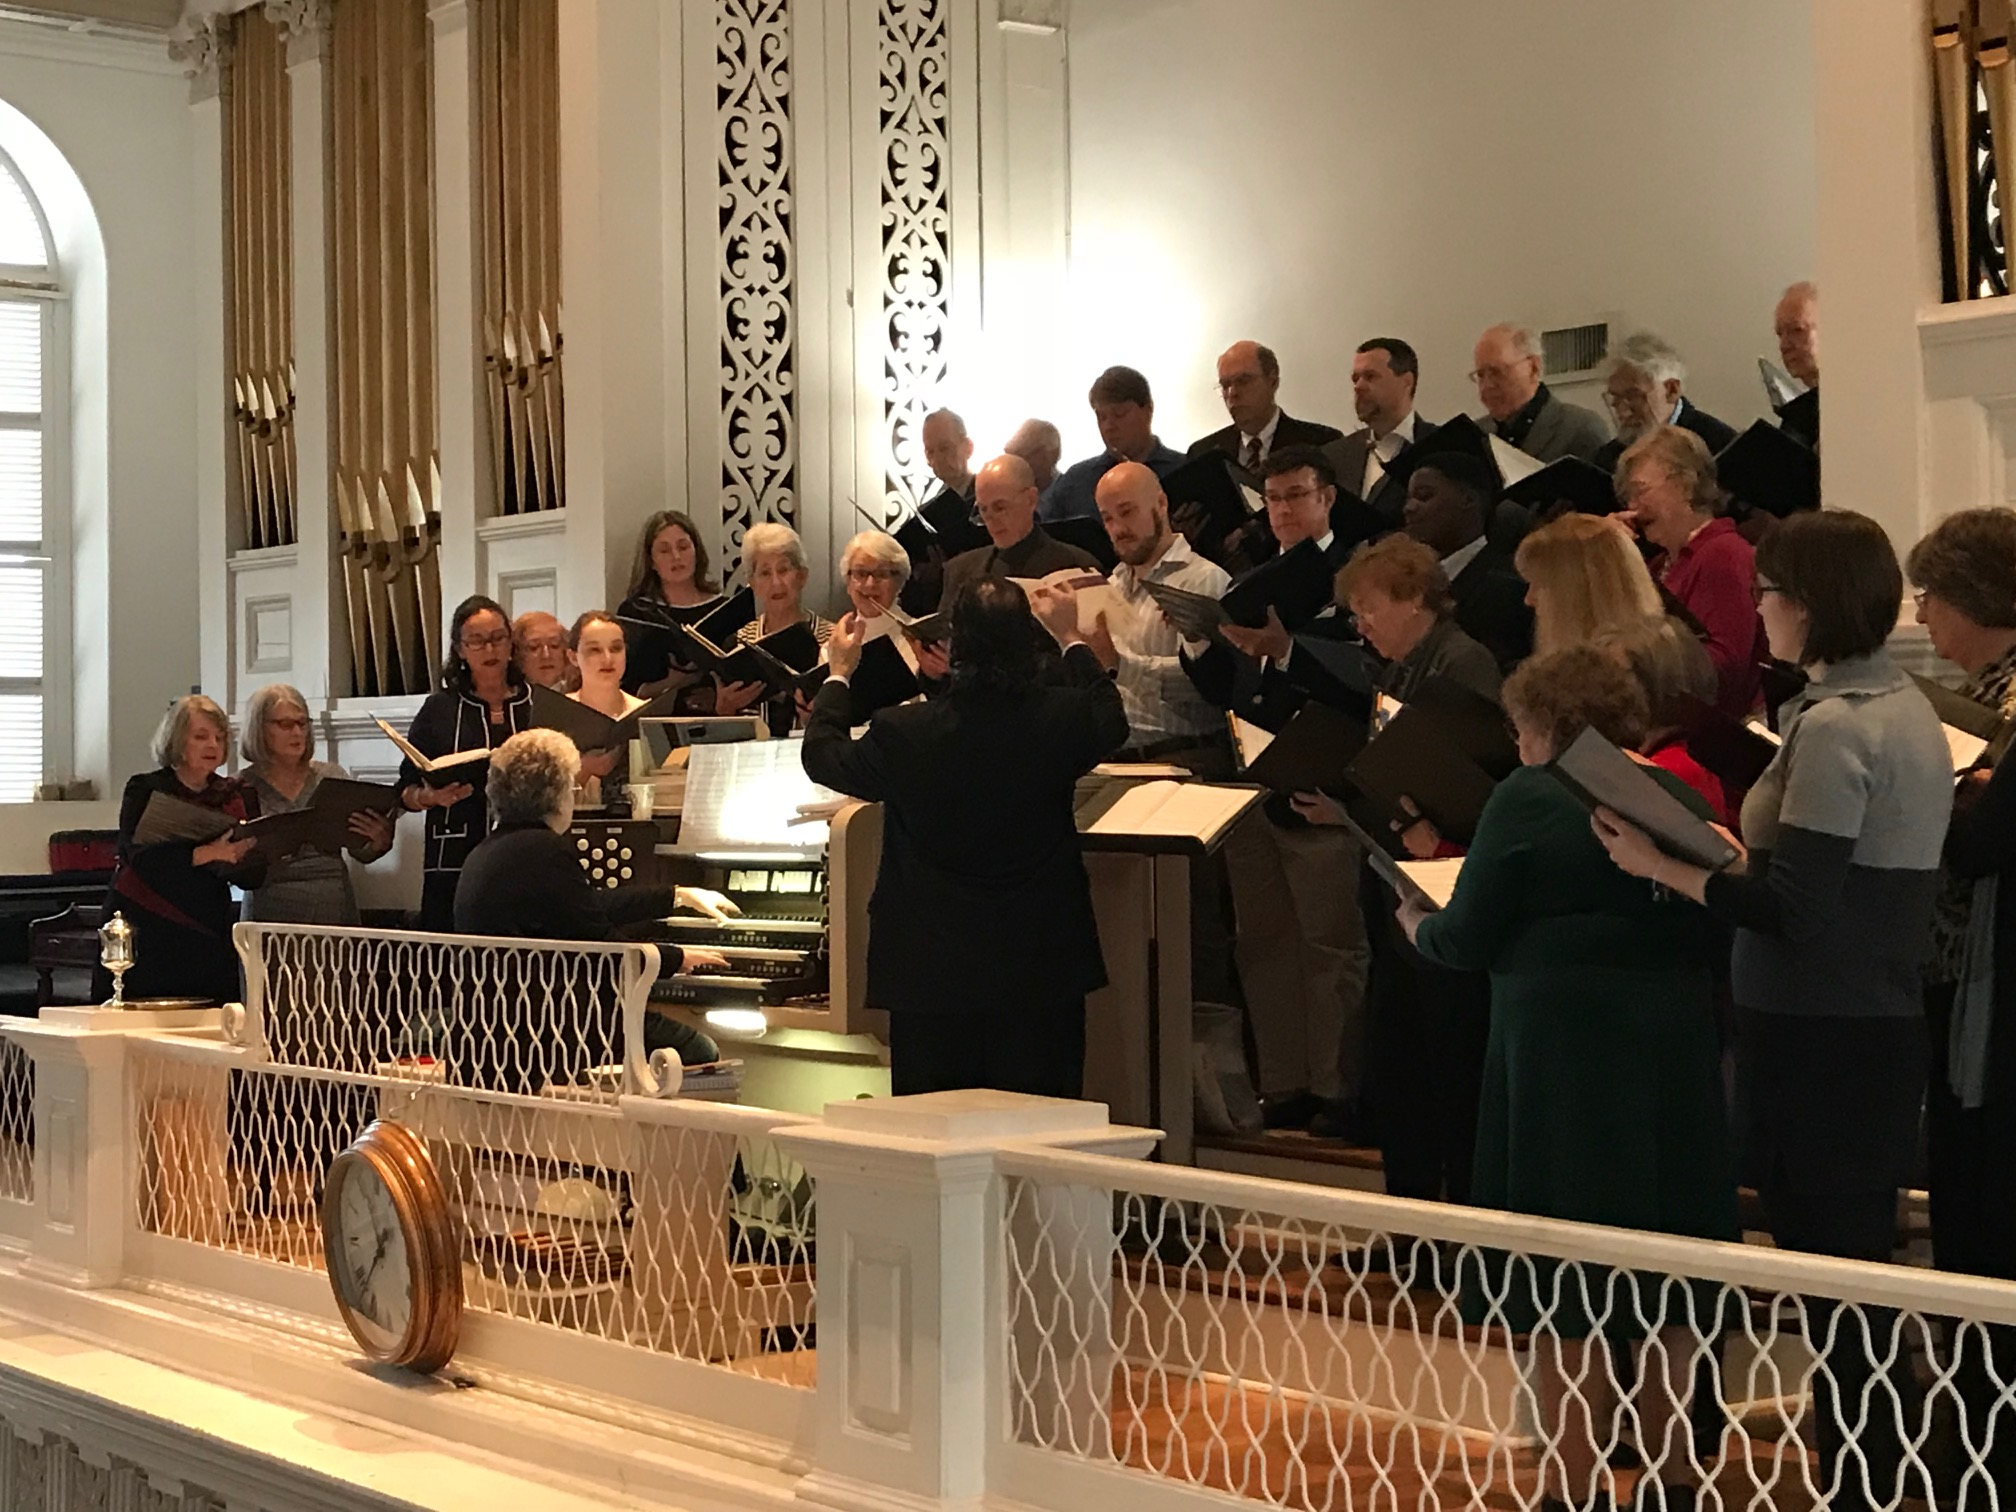 First Scots' Choir and Second Presbyterian Choirs sing together on February 4, 2018